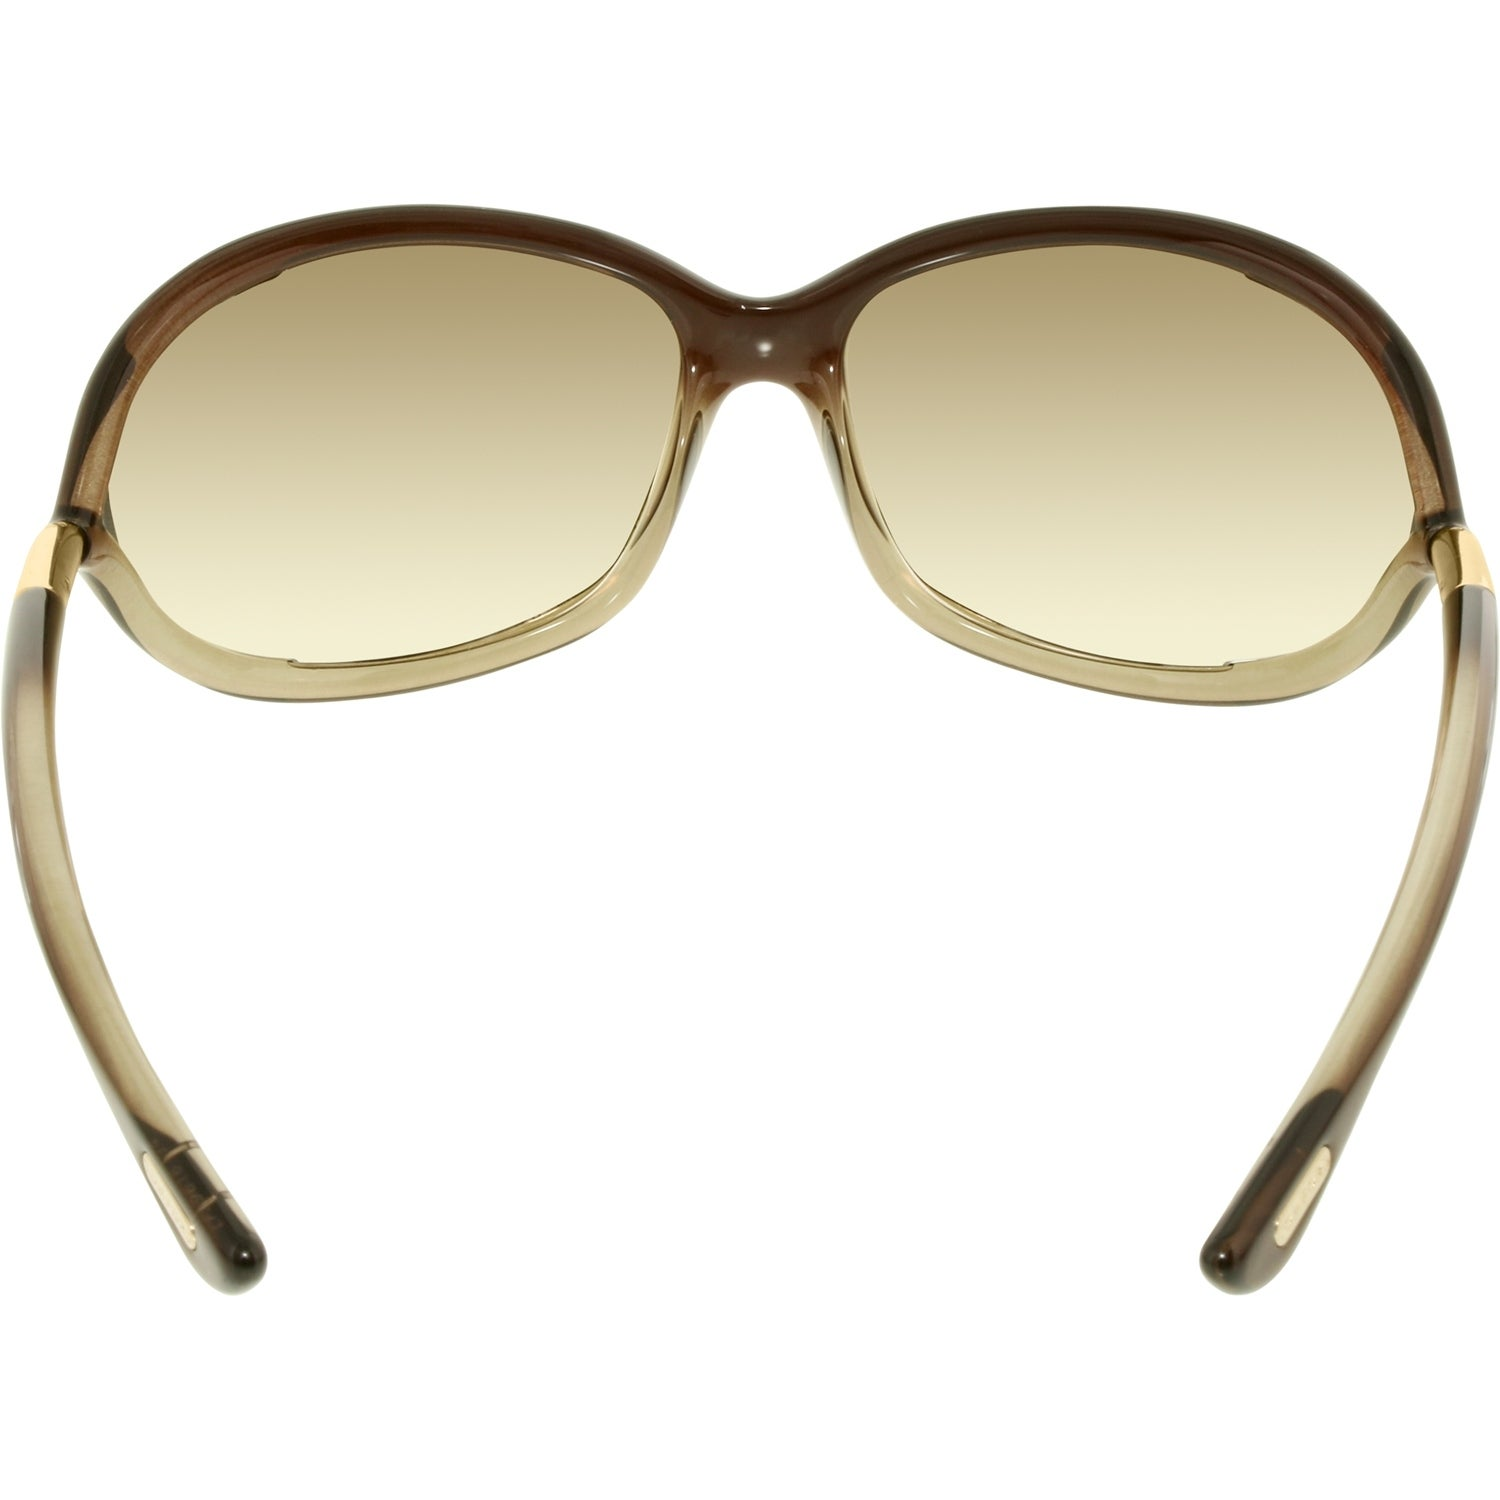 2c579785f7 Shop Tom Ford Women s Jennifer FT0008-38F-61 Brown Square Sunglasses - Free  Shipping Today - Overstock.com - 18901174